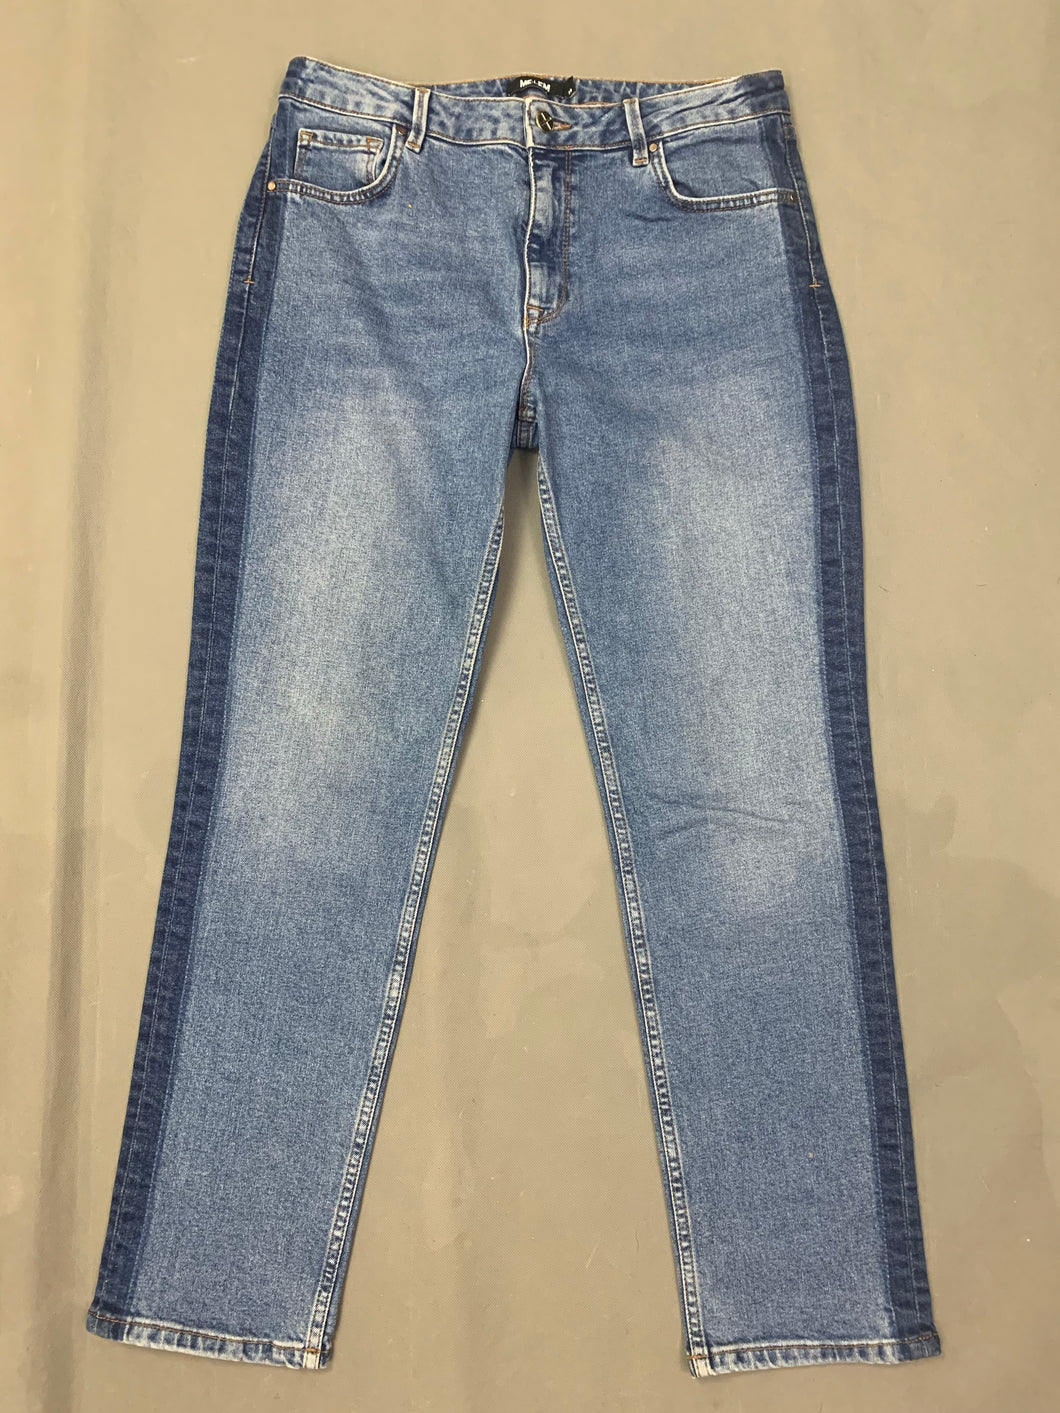 ME+EM Ladies Blue Denim Tapered Leg JEANS Size Waist 28